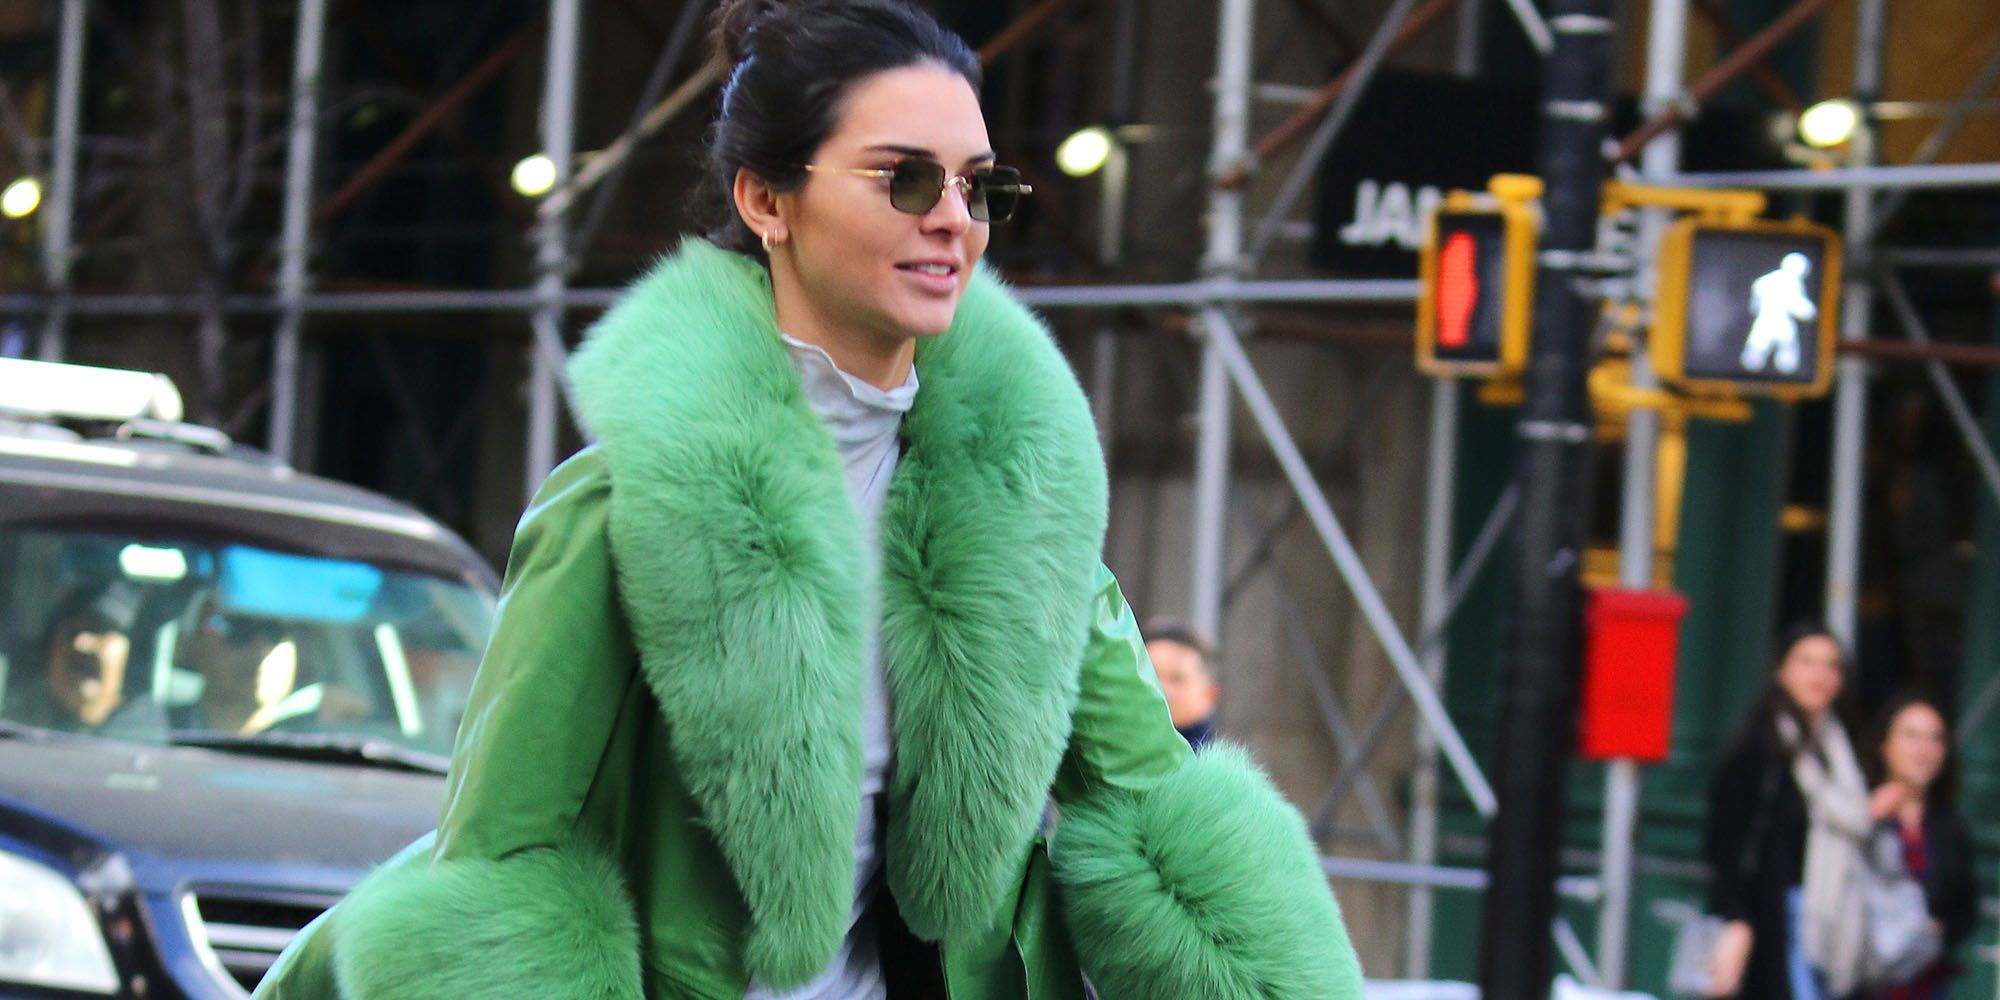 Kendall Jenner goes on a CitiBike ride on her 23th Birthday in New York City.